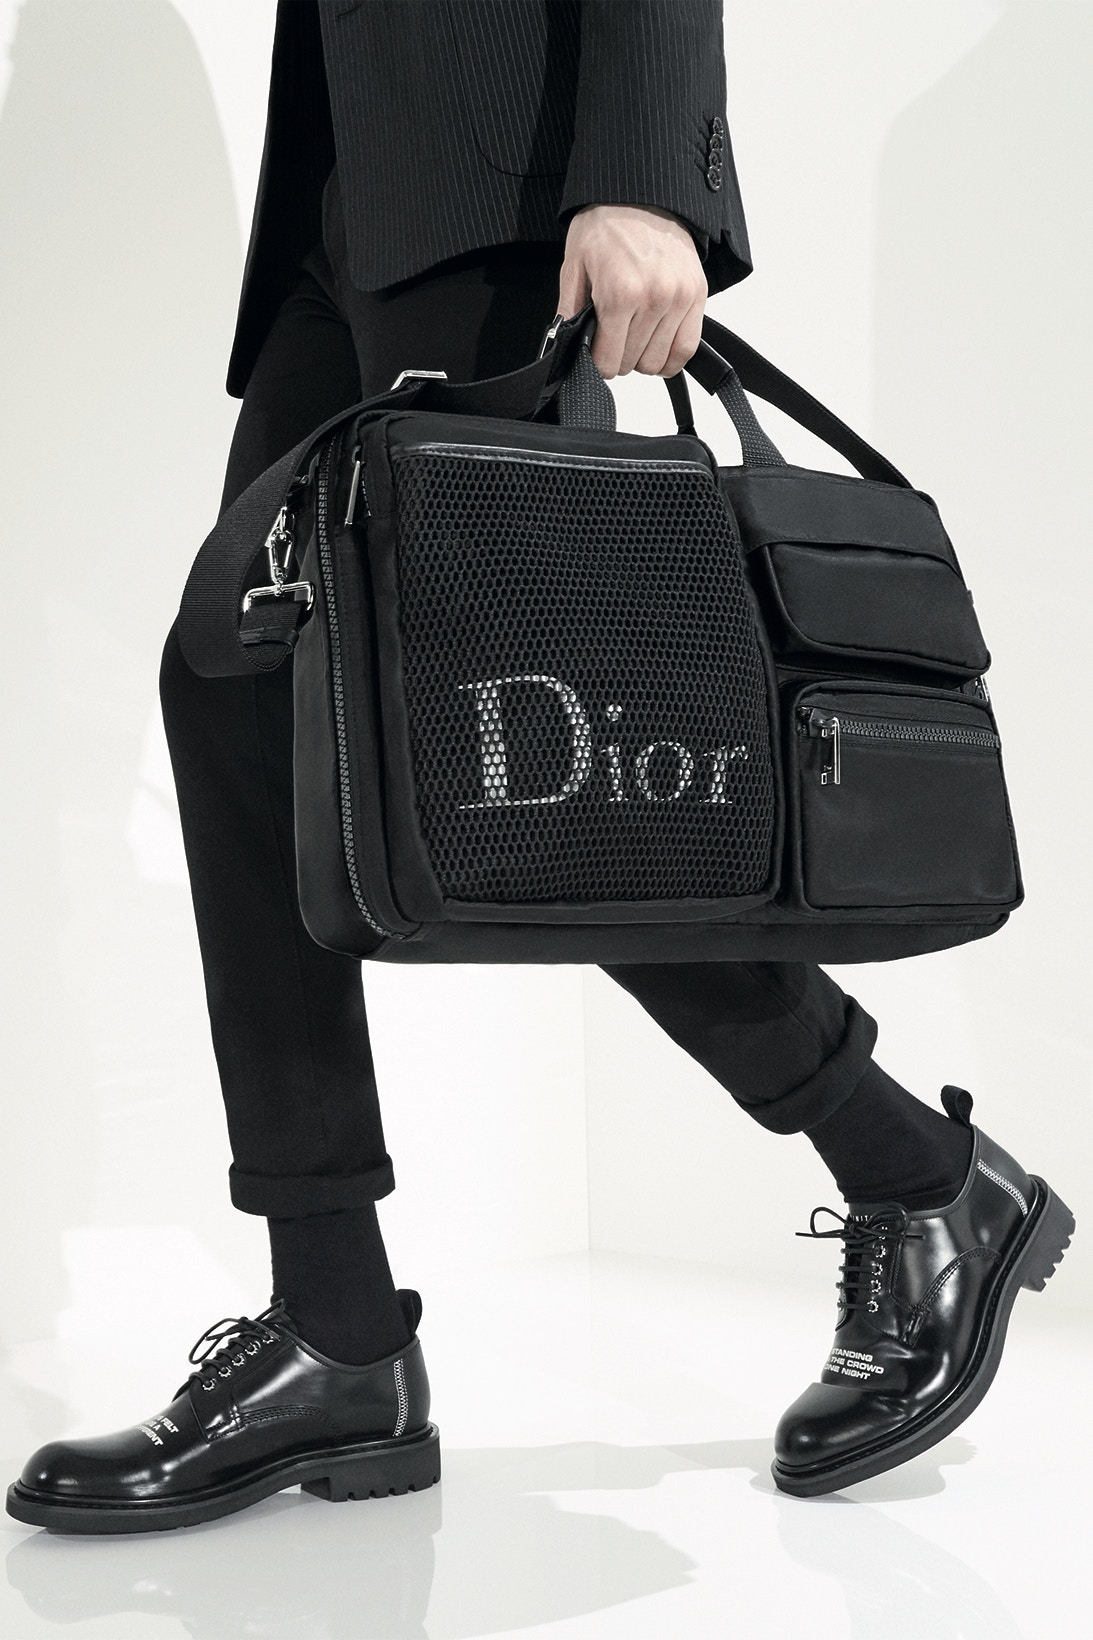 Dior Homme Are Showing-Off Their Playground Bag Collection